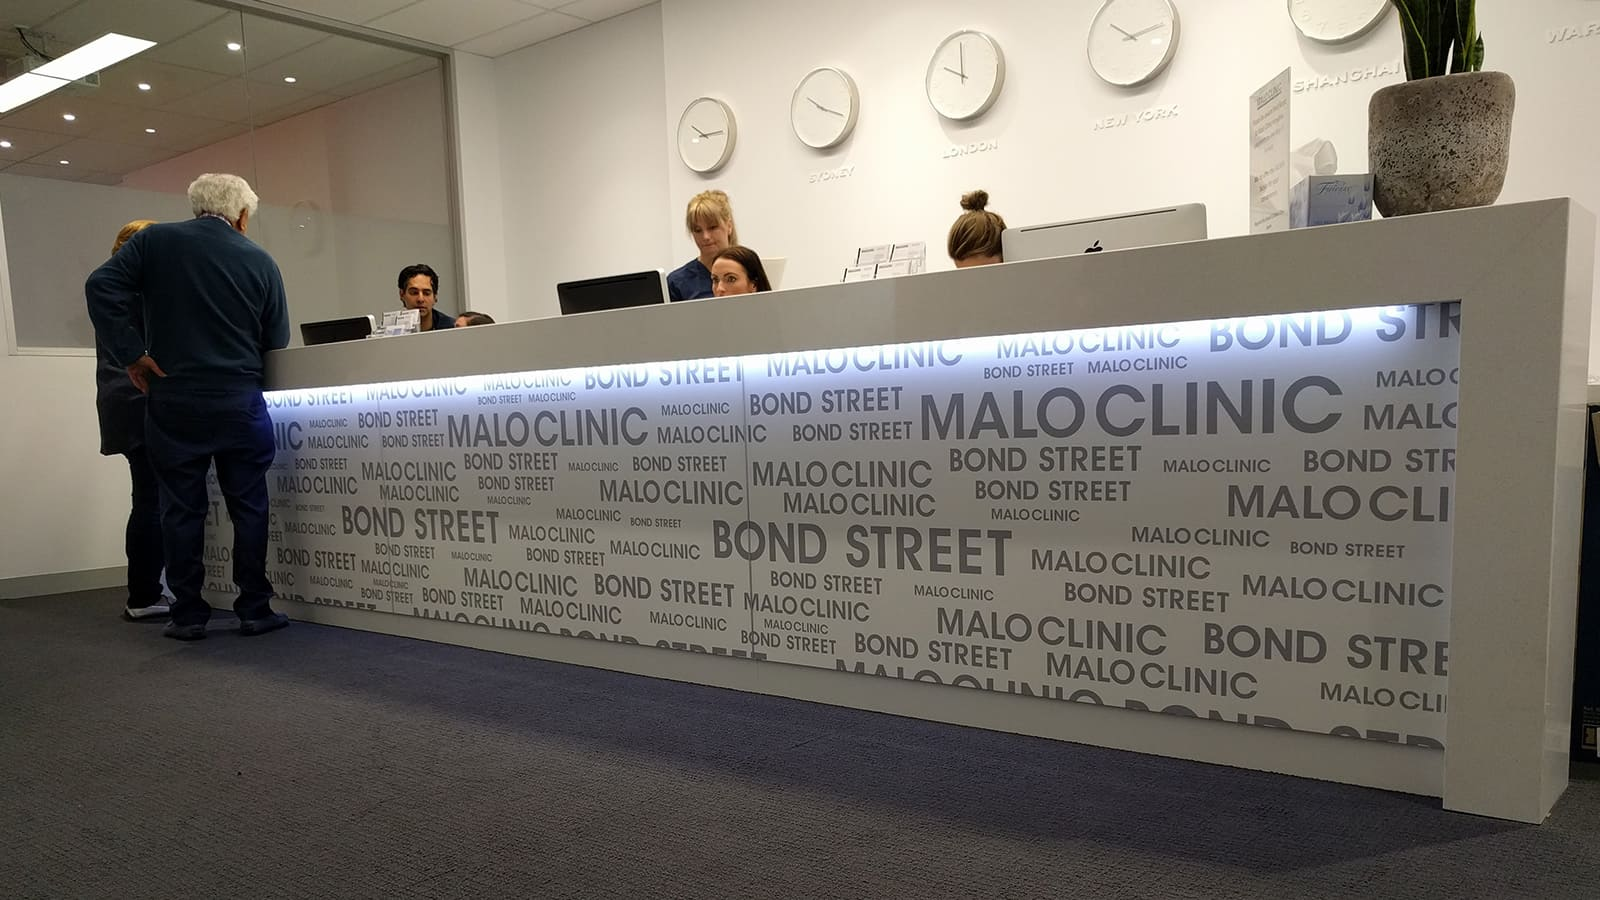 wall-graphics-malo-clinic